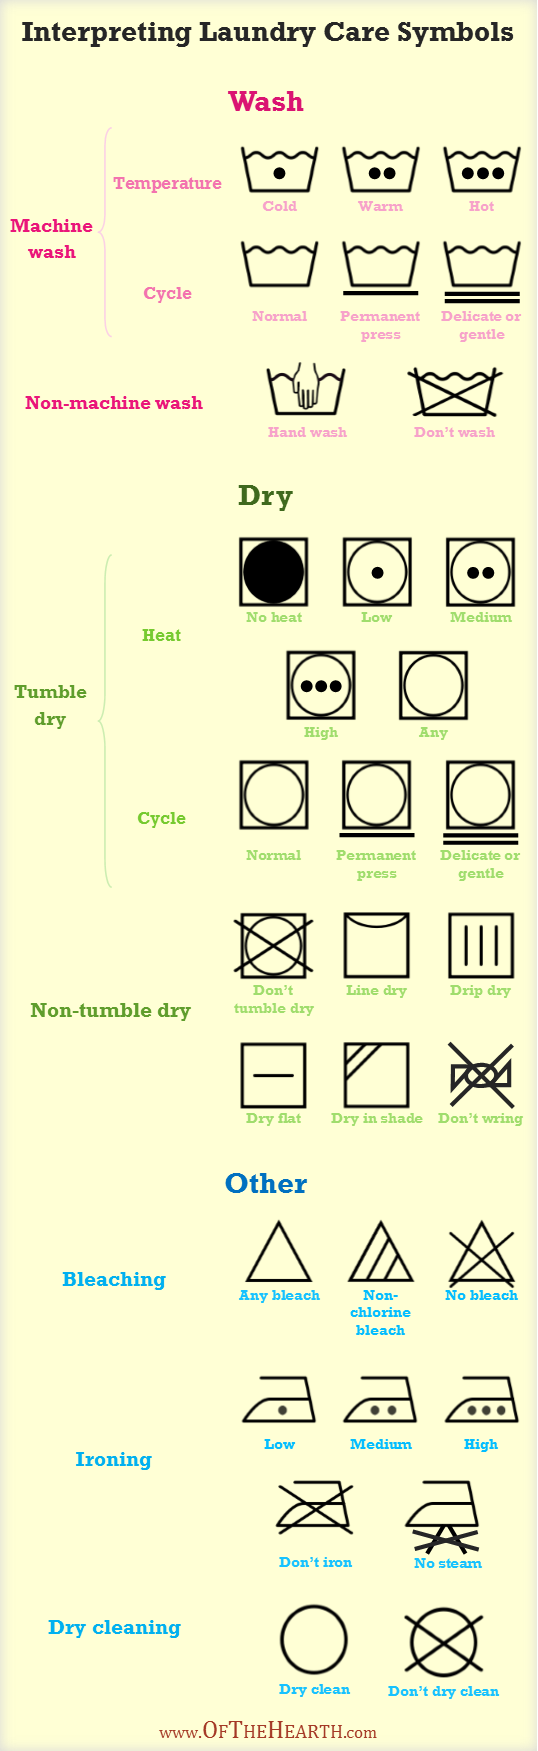 Interpreting Laundry Care Symbols